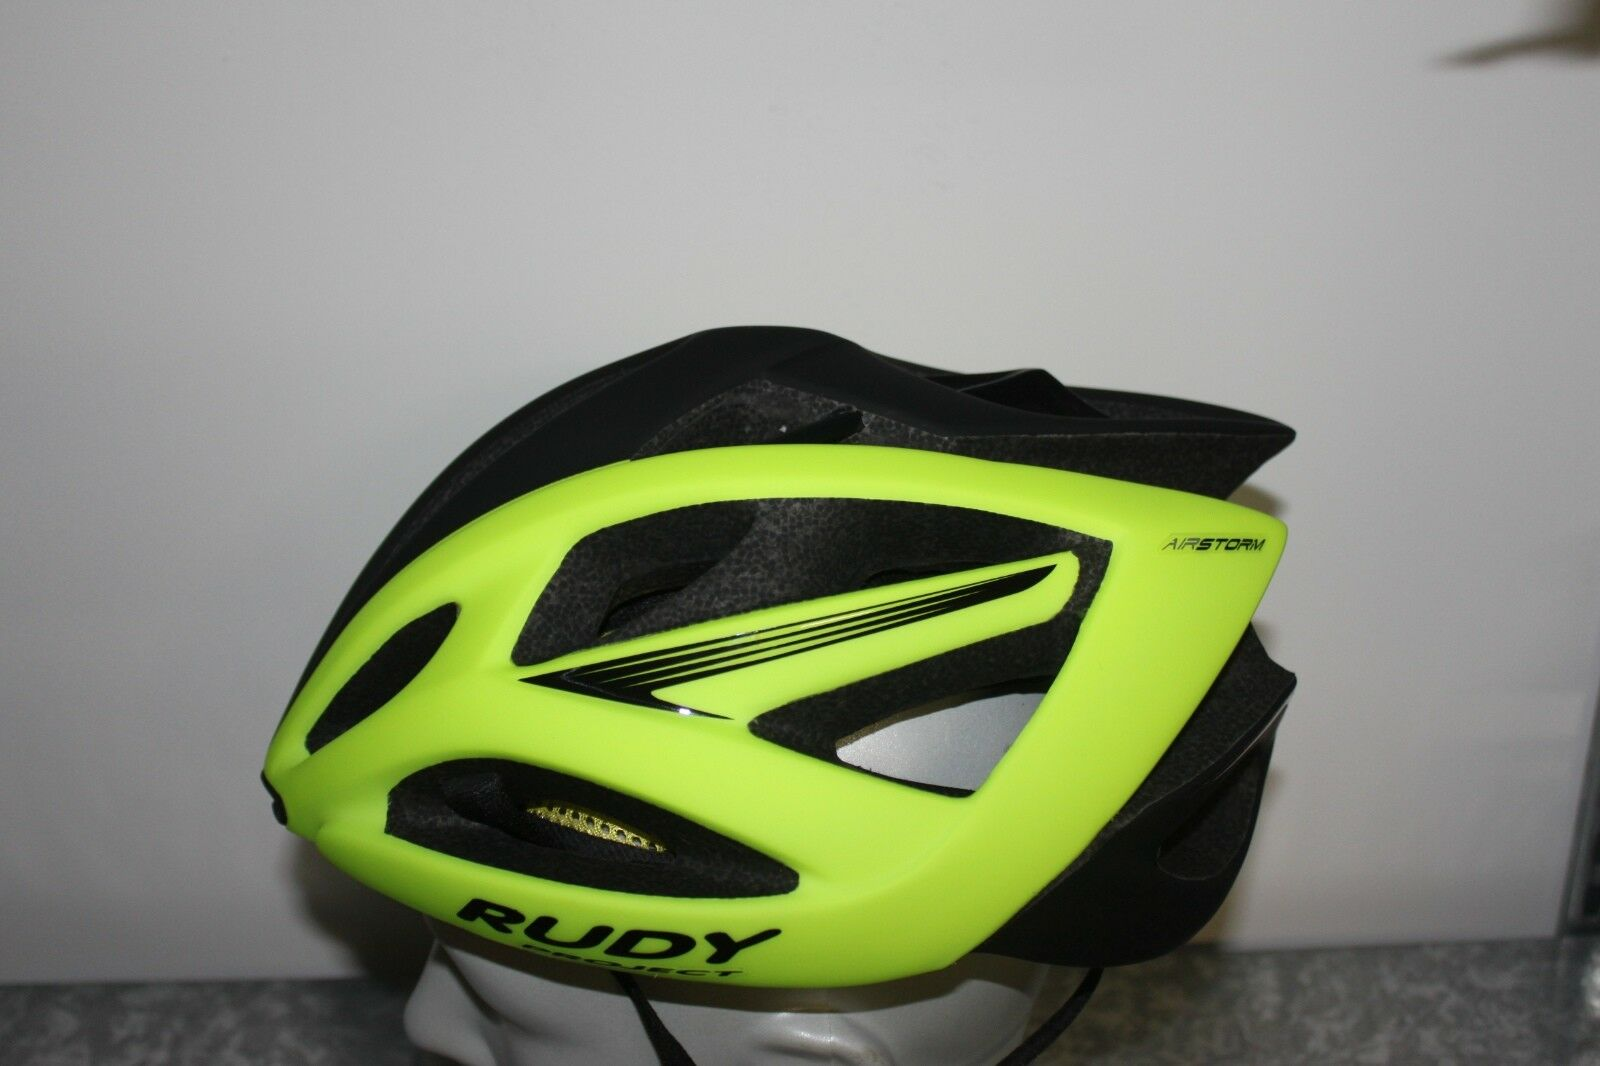 Rudy Project Airstorm Radhelm - Yellow matte Size L 59-61 cm